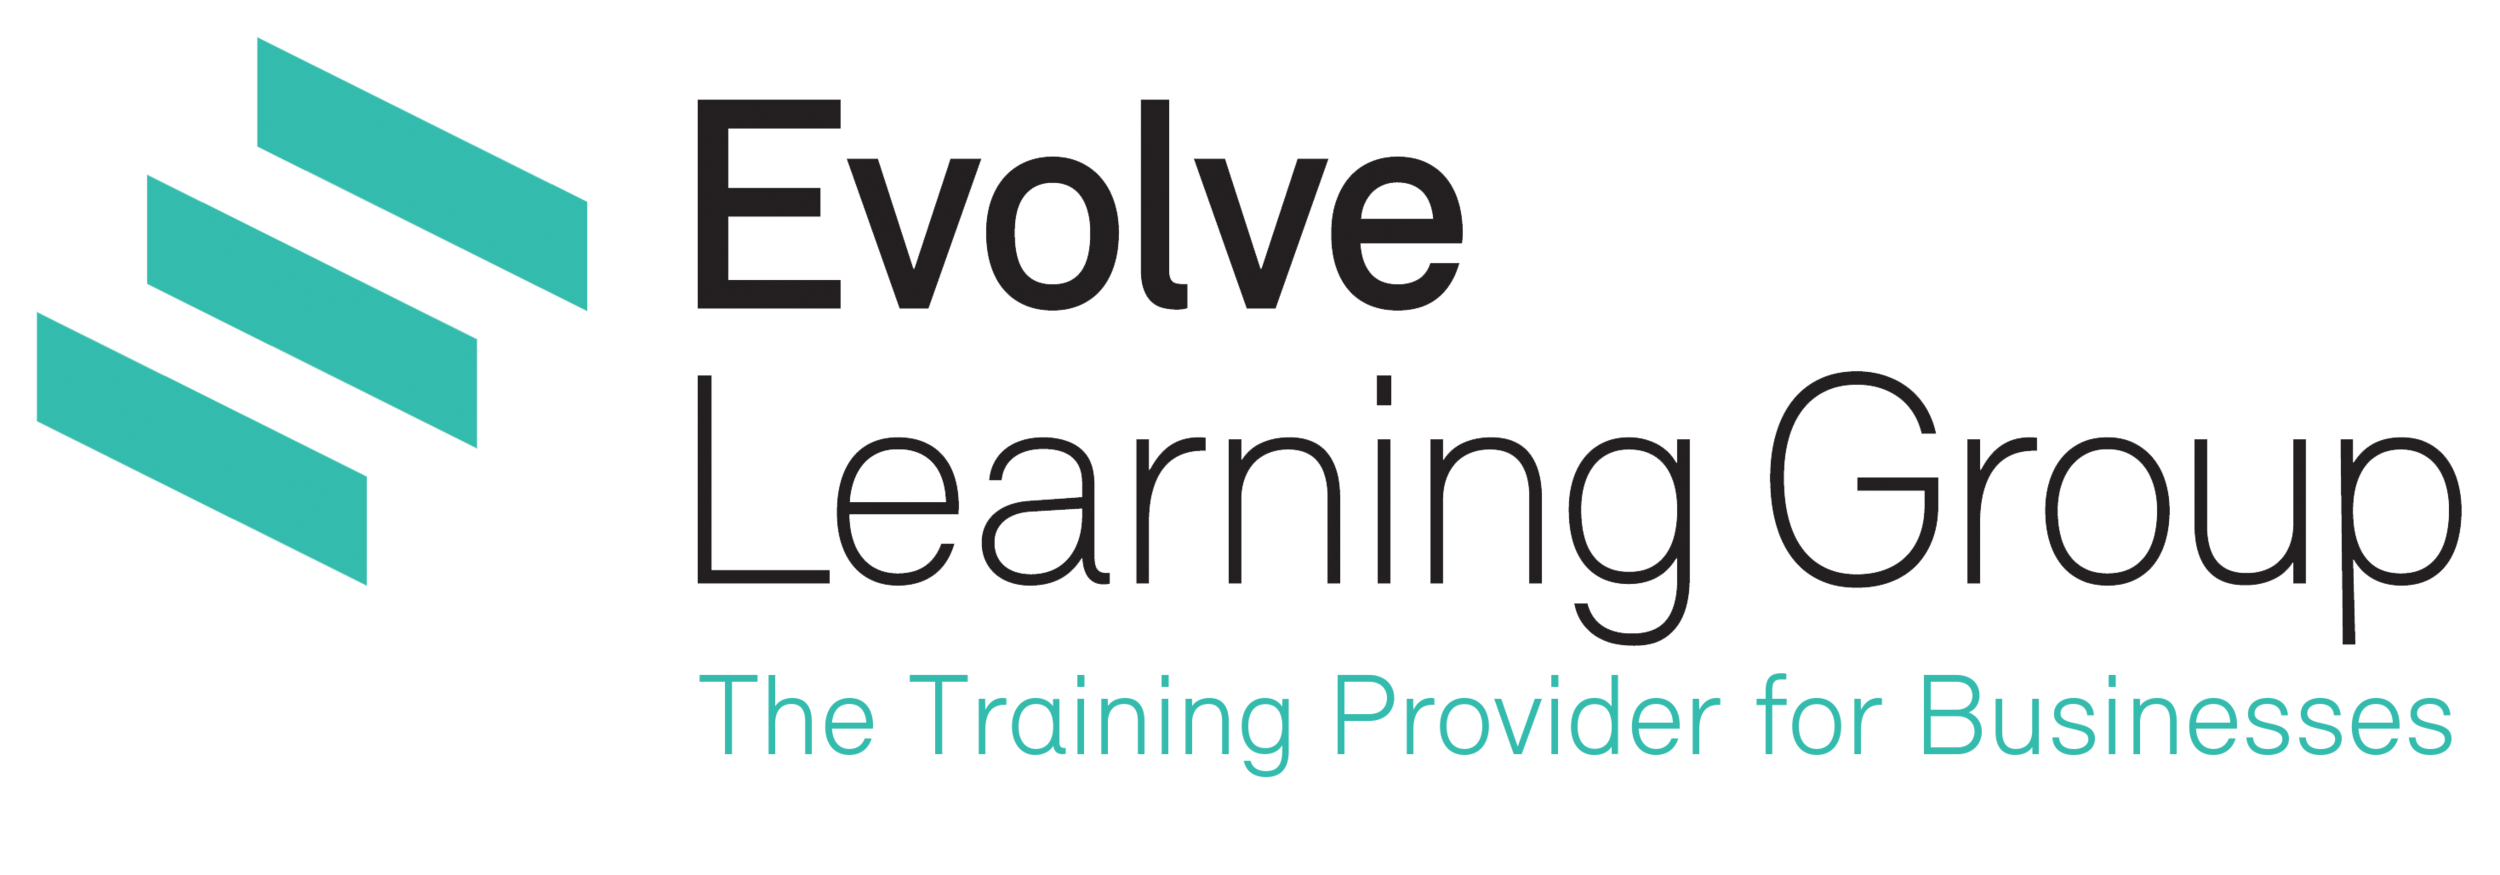 Evolve_colour_black_(TRANS BACK) - Training Provider for Businesses.png